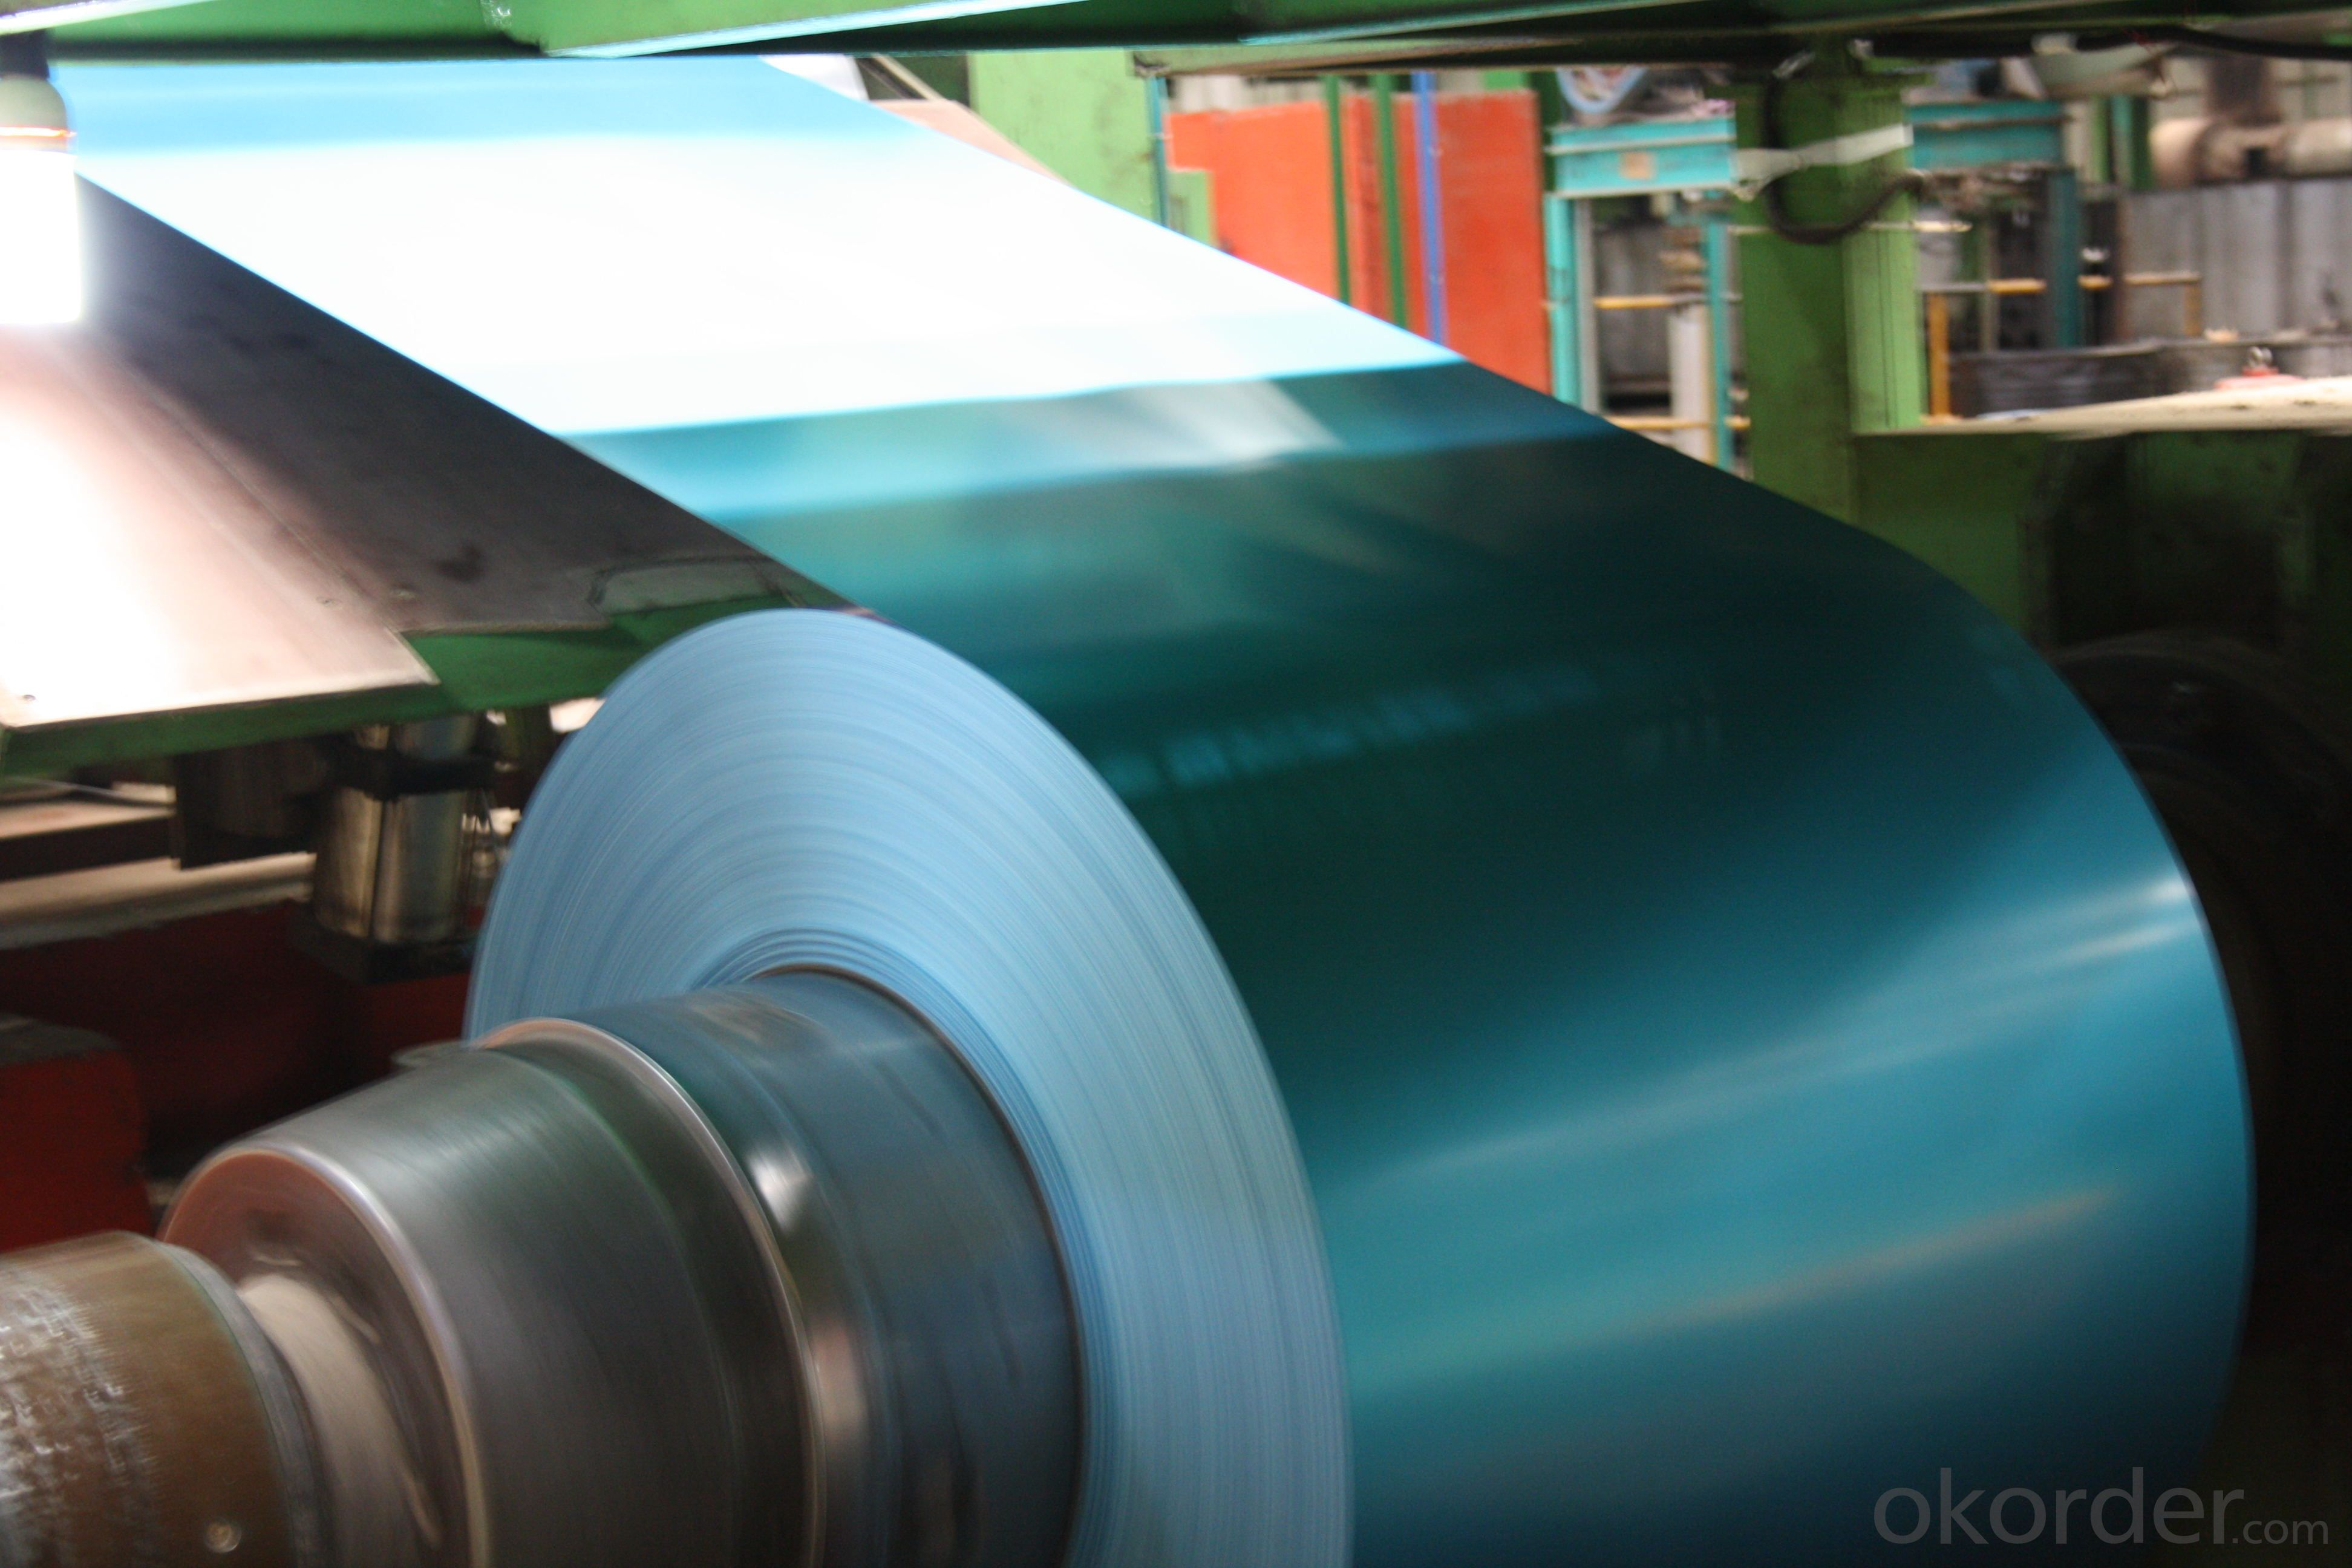 Buy Best Sell Prepainted Galvanized Steel Coil Price Size Weight Model Width Okorder Com